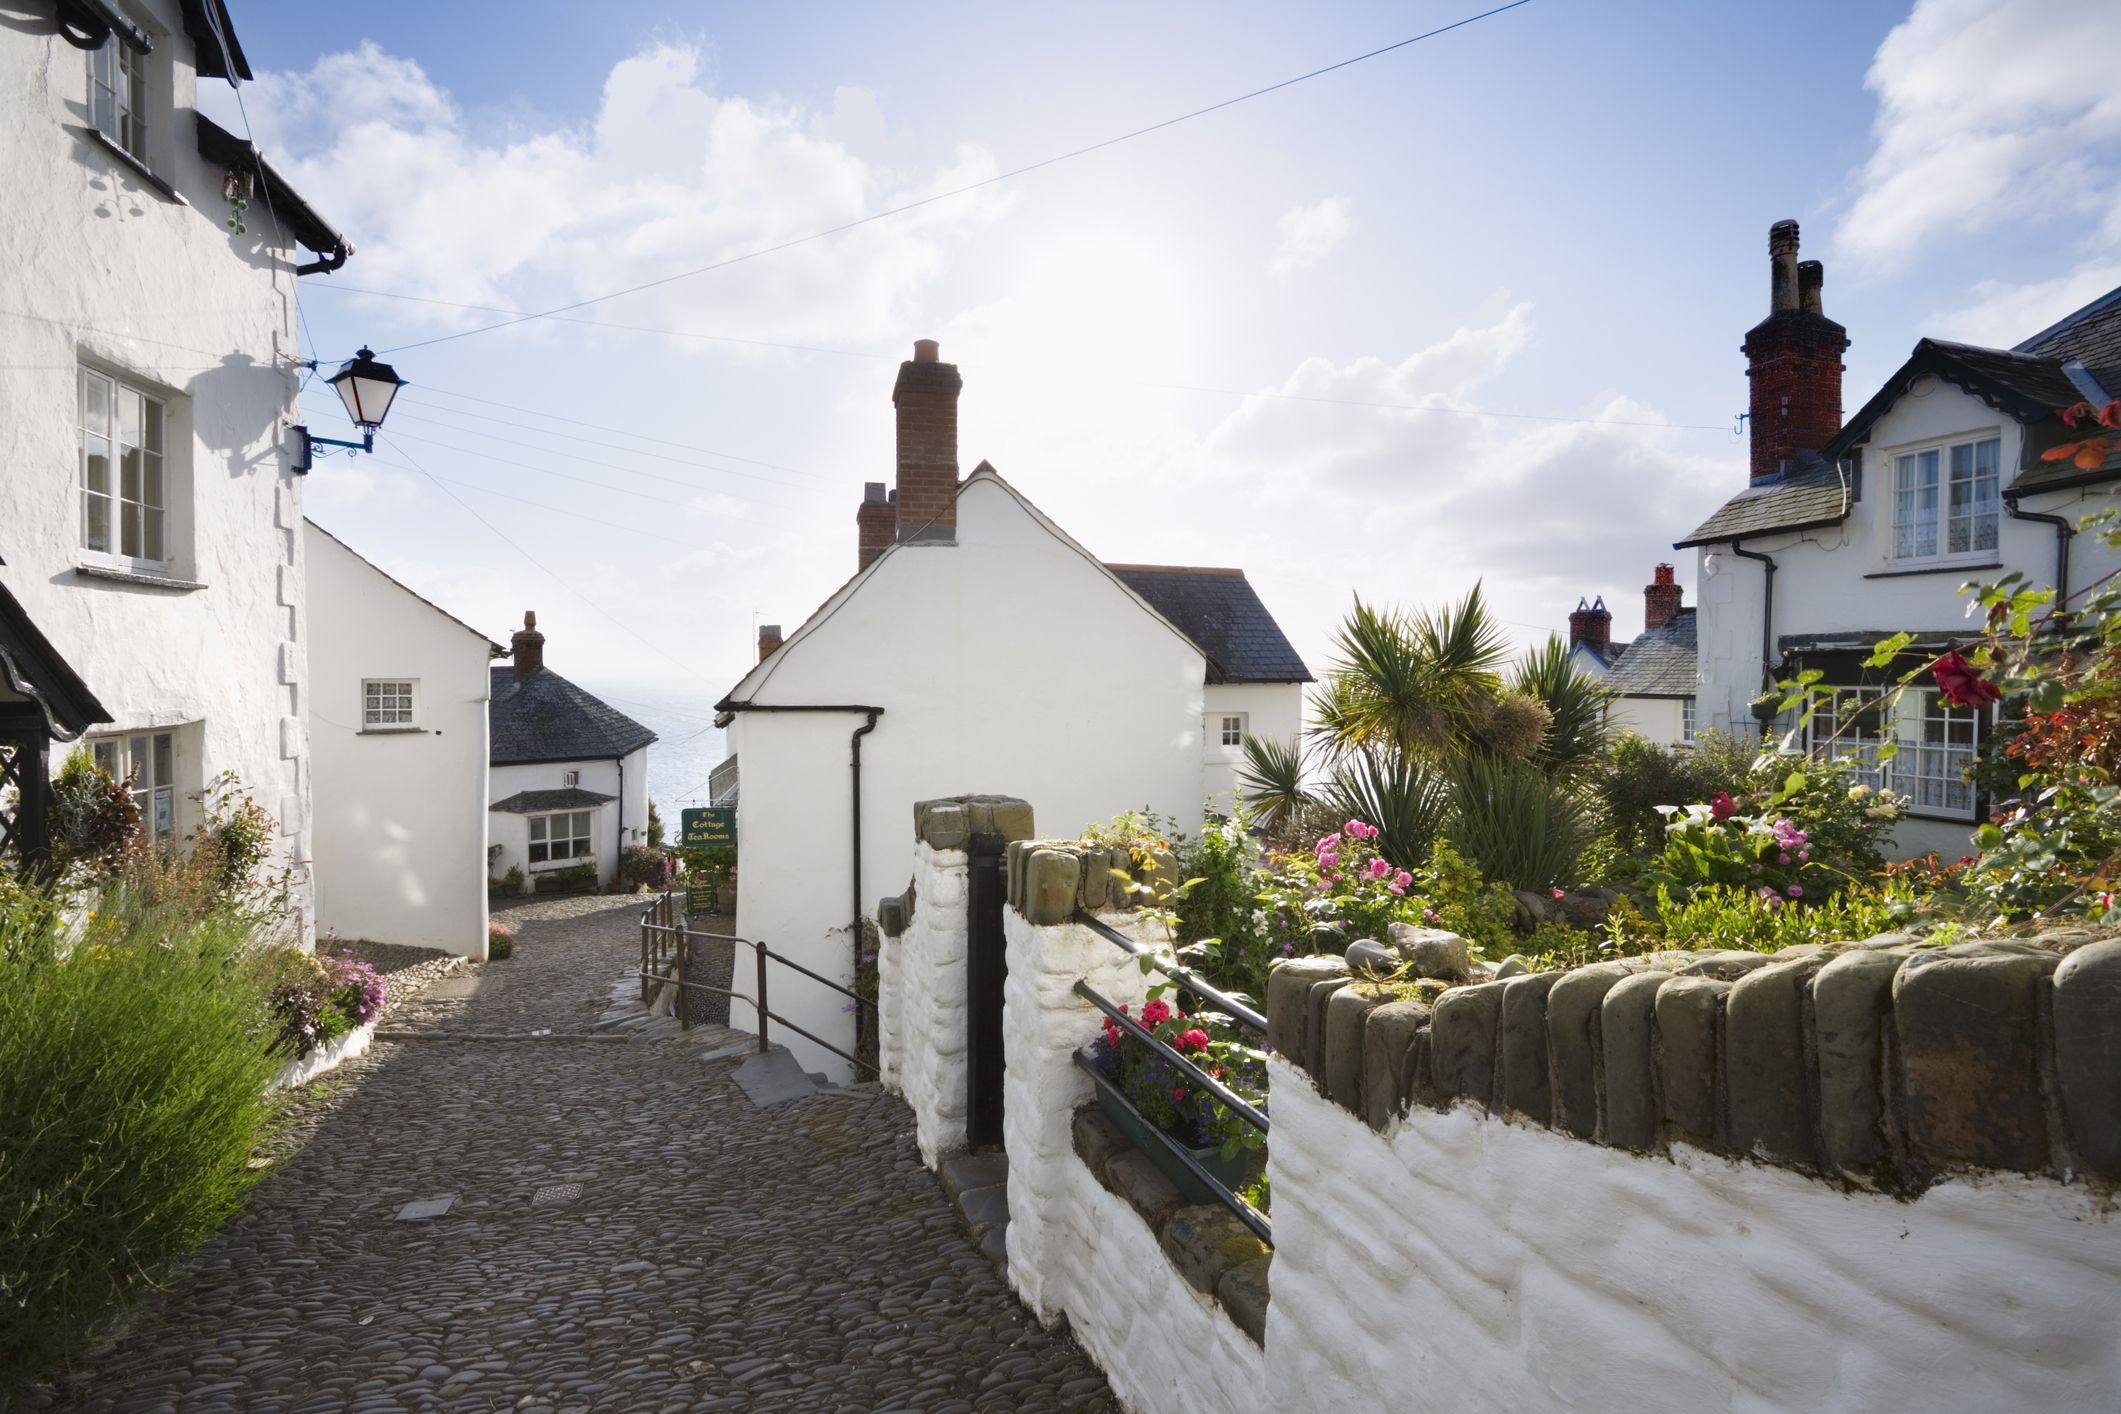 5 of the Prettiest Tiny Villages to Visit in England